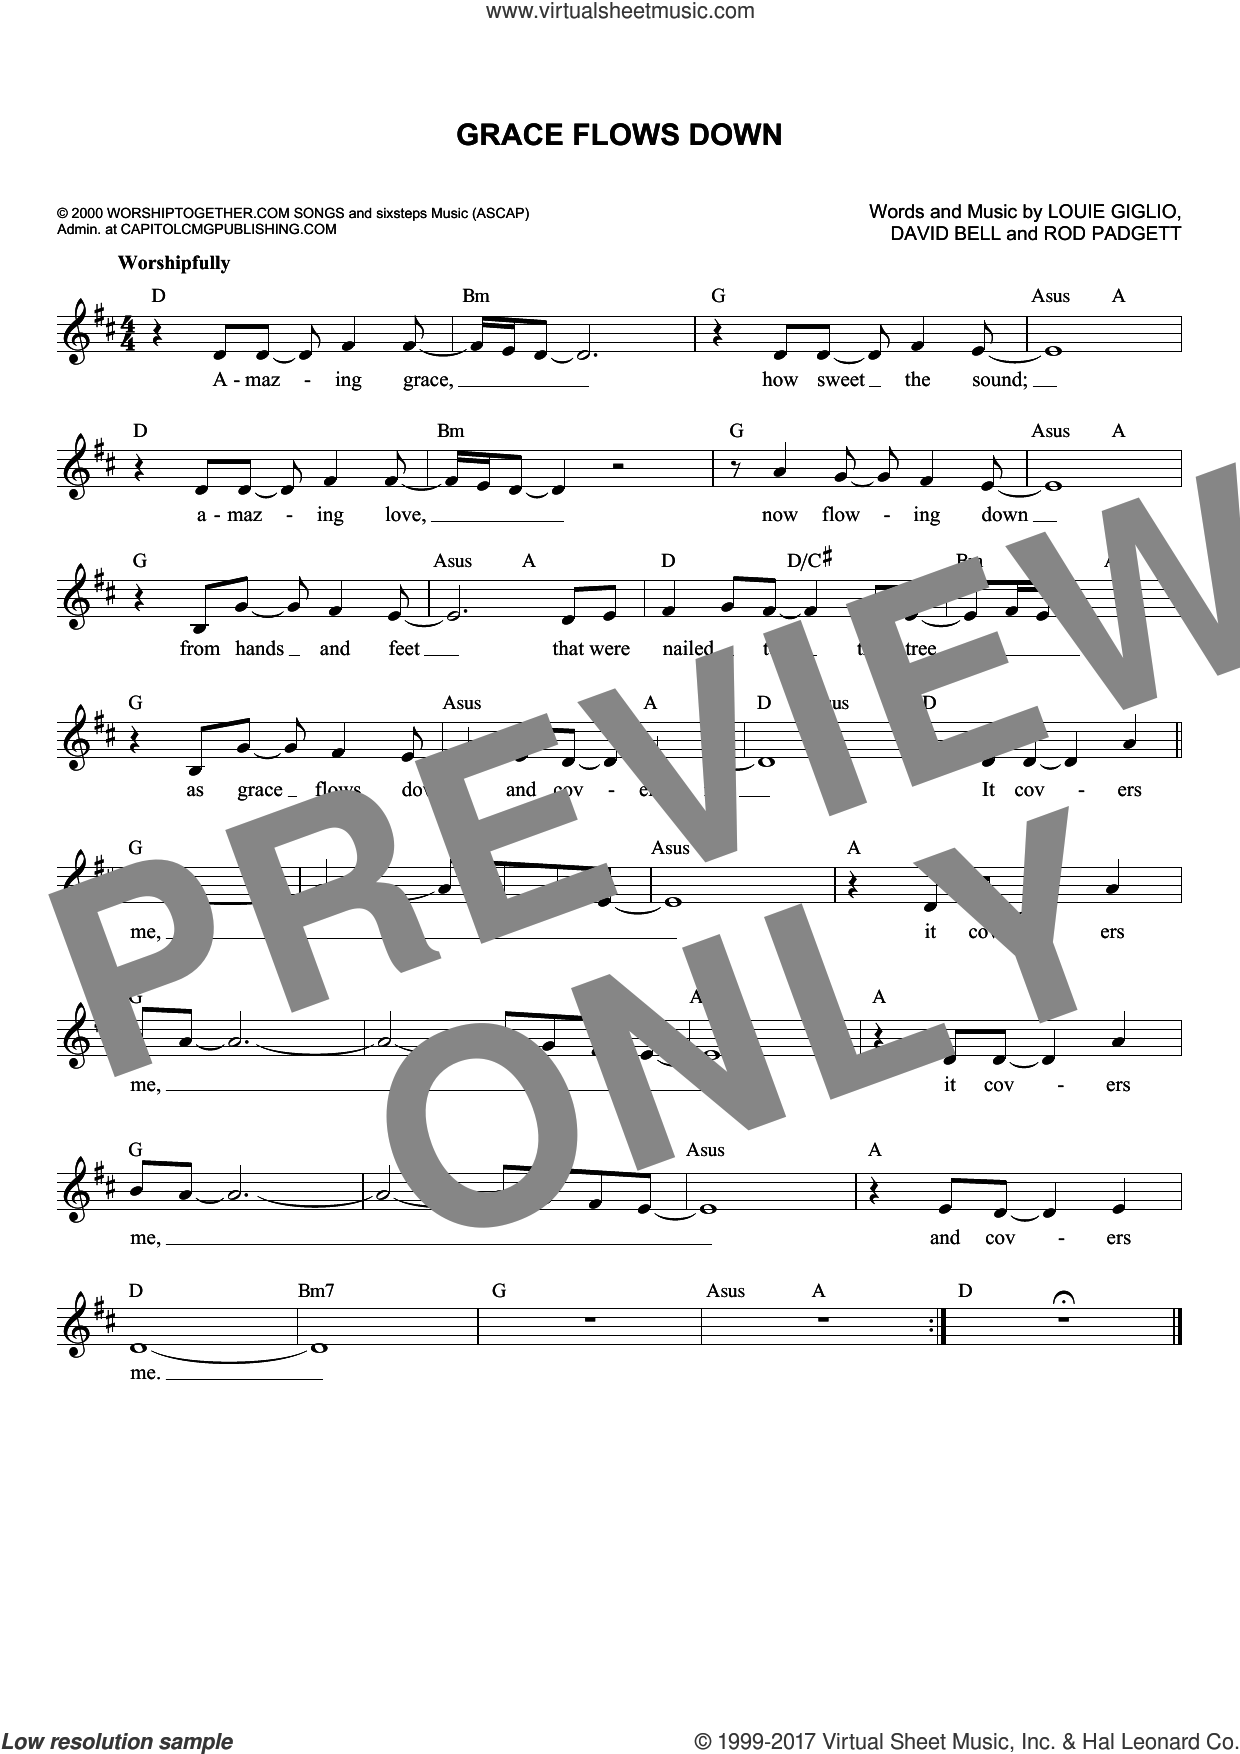 Grace Flows Down sheet music for voice and other instruments (fake book) by Passion, David Bell, Louie Giglio and Rod Padgett, intermediate skill level